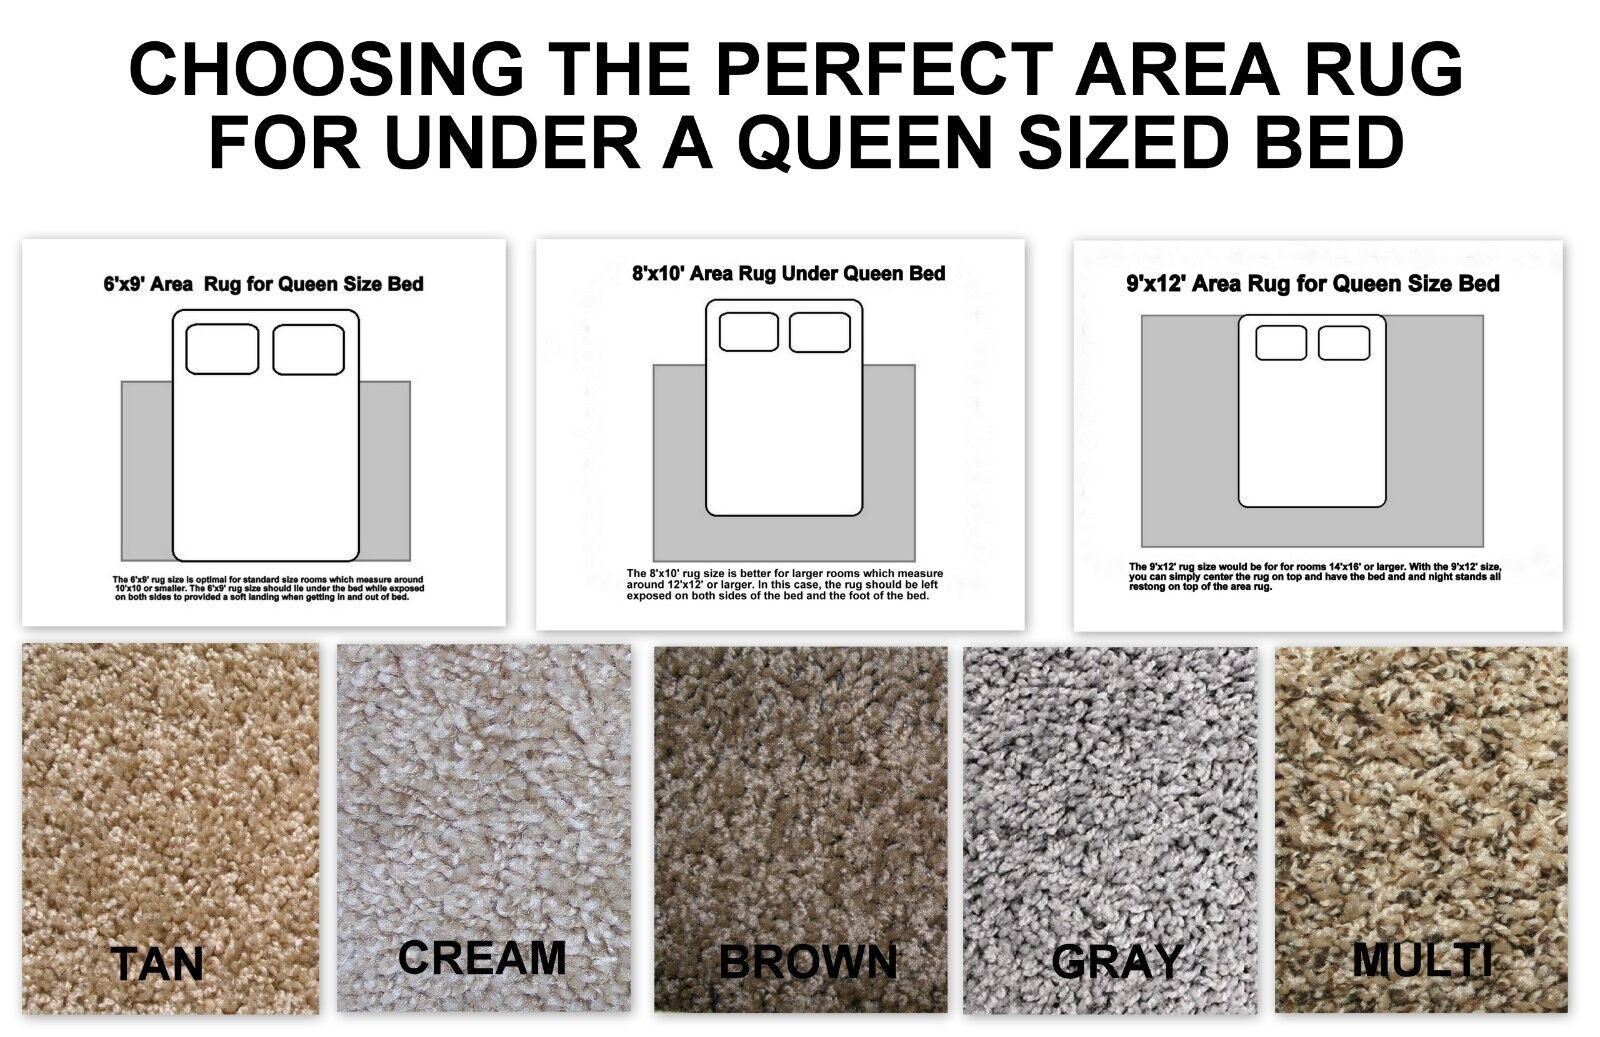 Choosing The Perfect Area Rug for Under A Queen Size Bed